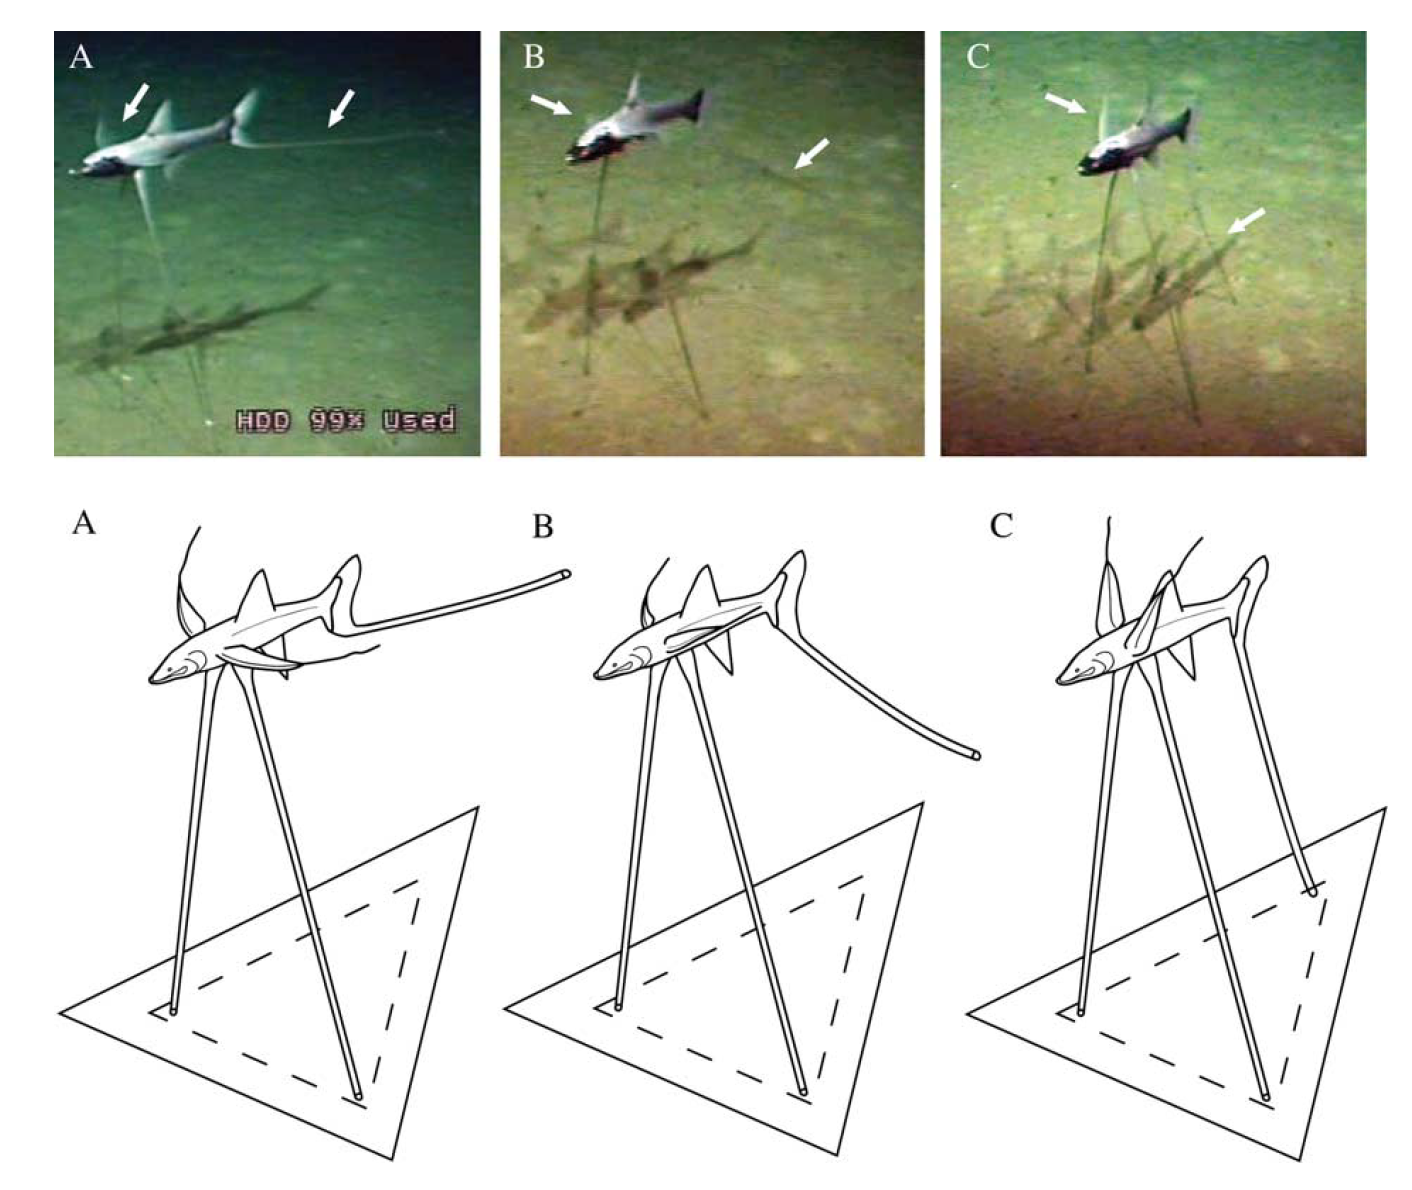 Tripodfish Locomotion - 05. Davis, M.P., and Chakrabarty, P. (2011). Tripodfish locomotion and landing behavior (Aulopiformes: Bathypterois) from video observations at bathypelagic depths in the campos basin of Brazil. Marine Biology Research, (7) 3:297-303.Google Scholar